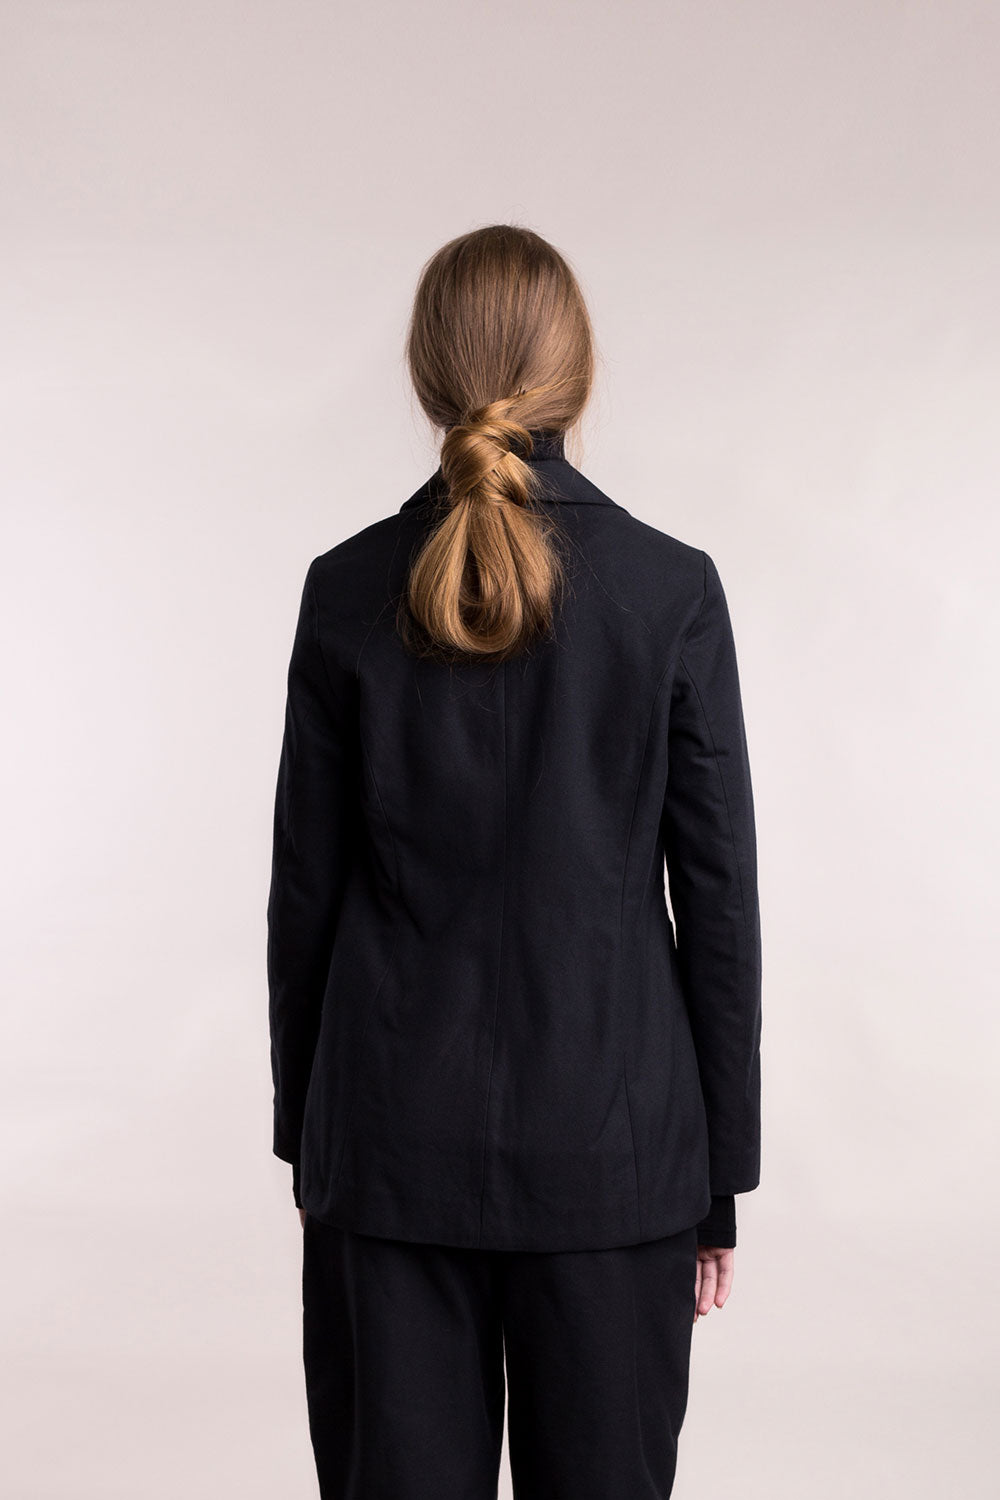 The model wears a black, sustainable, organic cotton, back view.